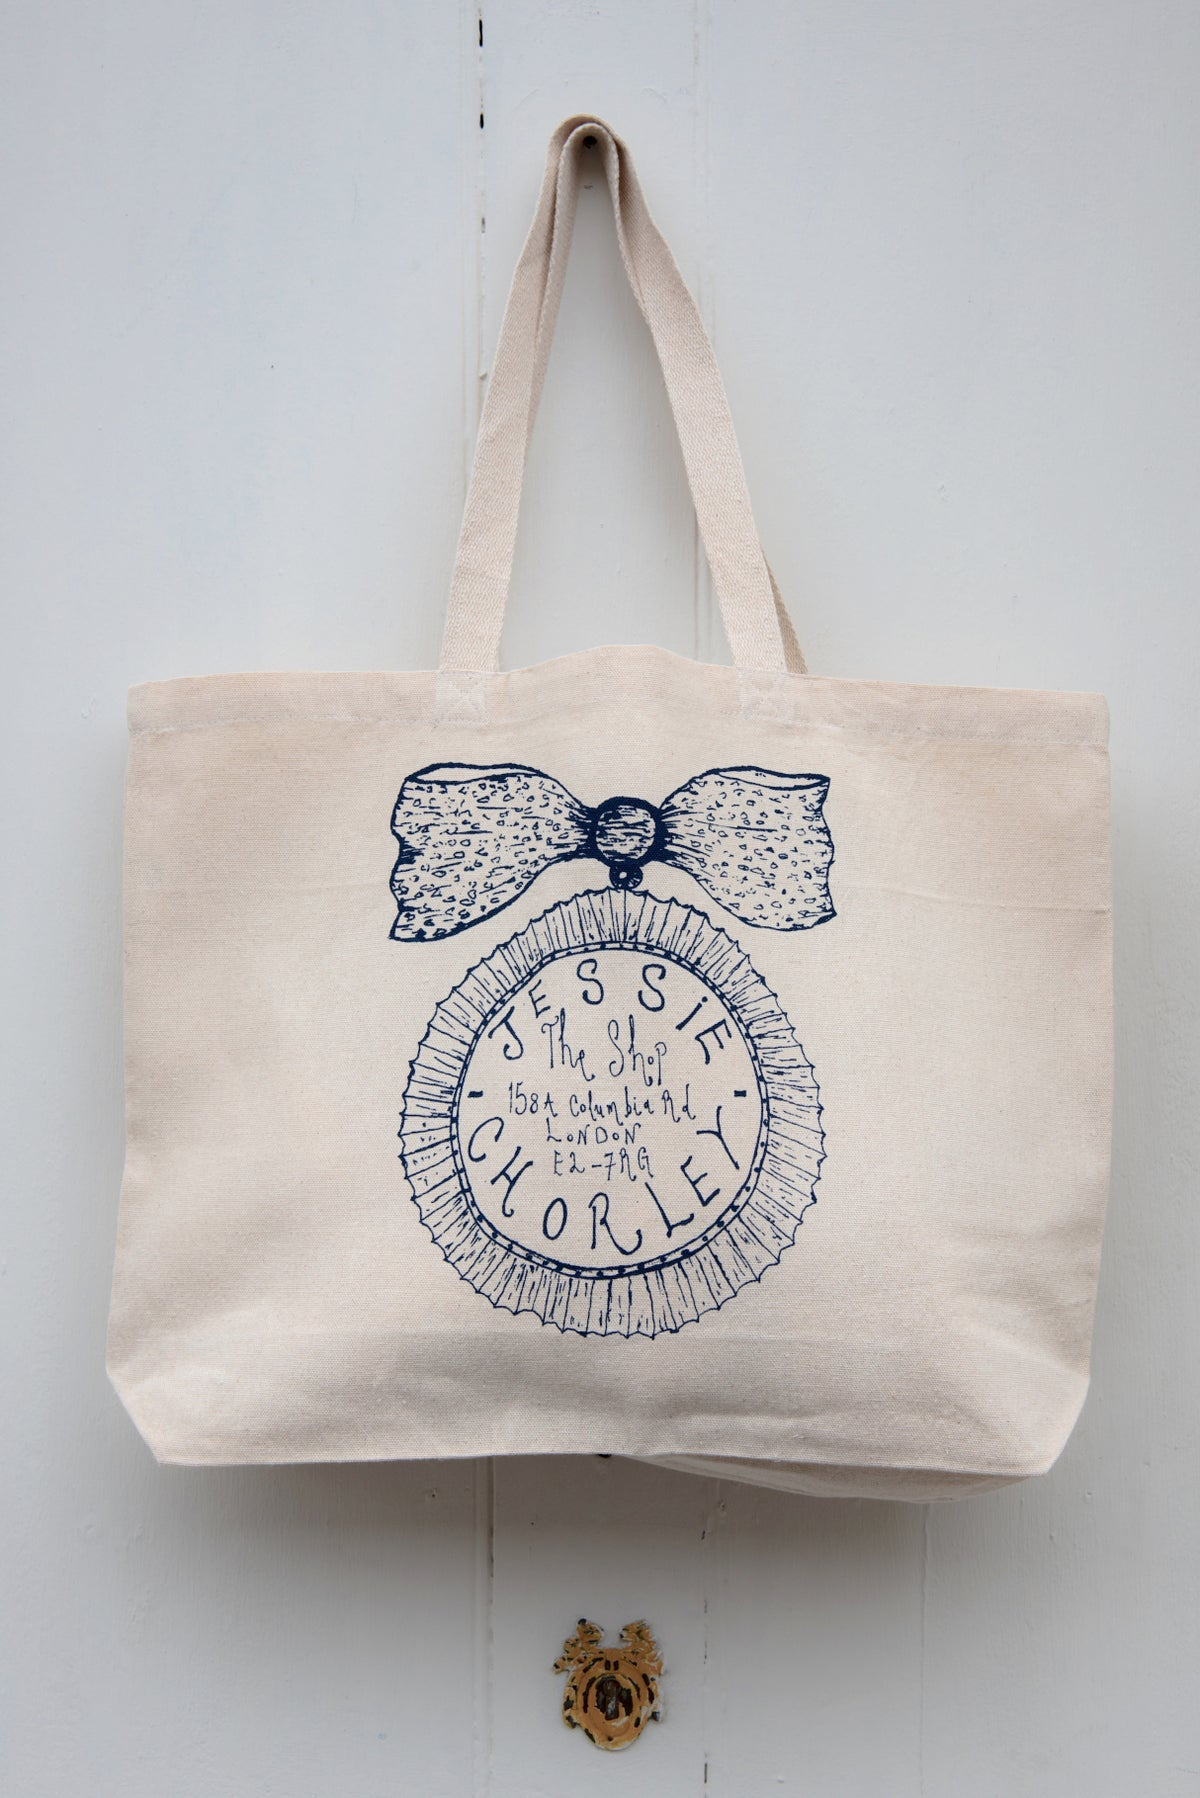 Image of 'The Jessie Chorley' original tote bag